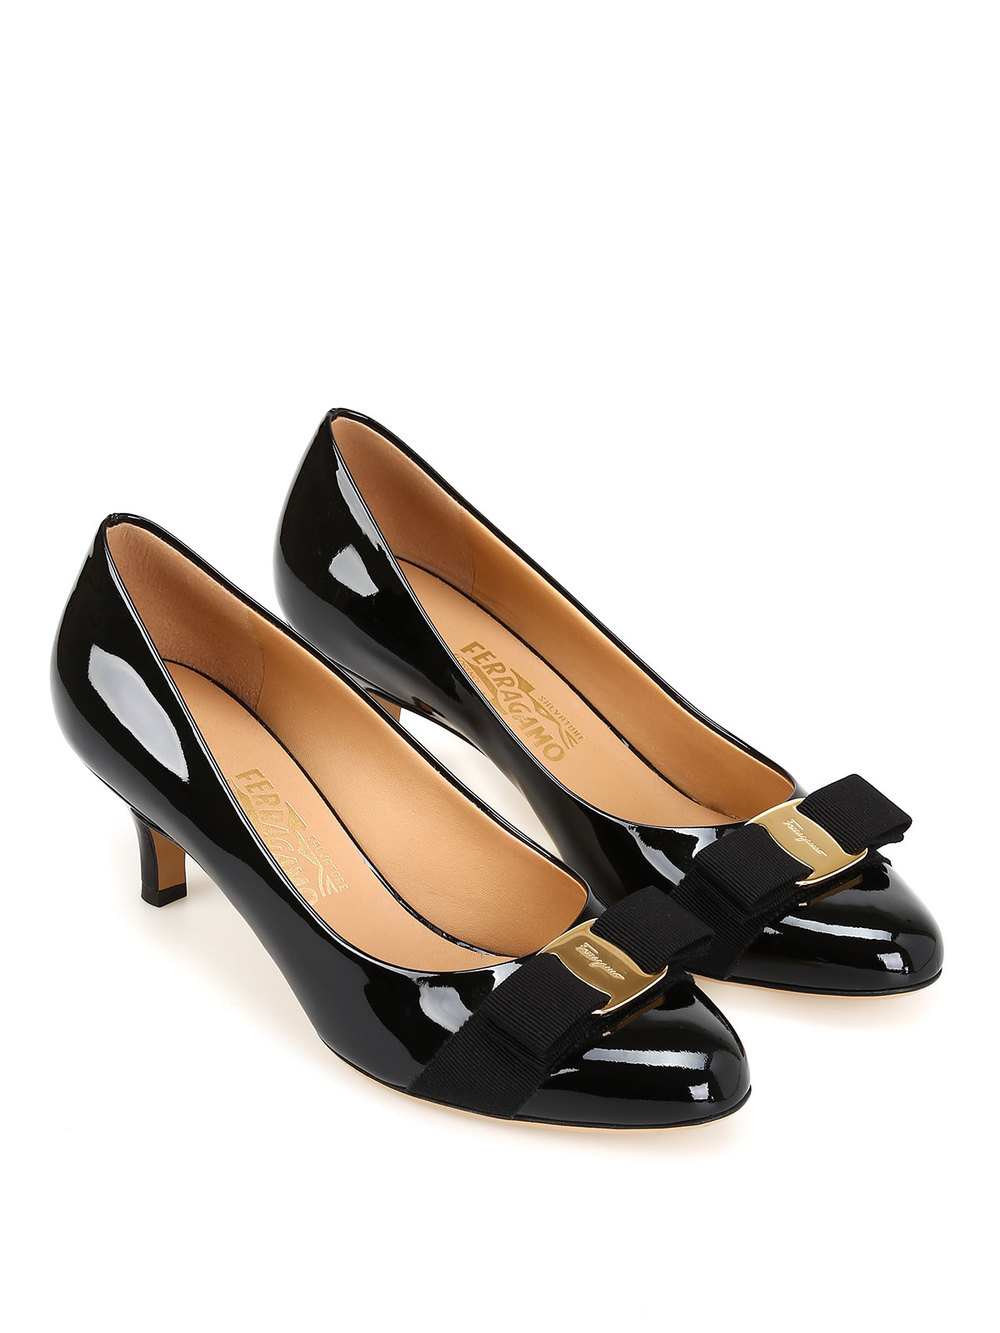 salvatore-ferragamo-flat-shoes-carla-55-patent-leather-pump-frg029196do000su71.jpg